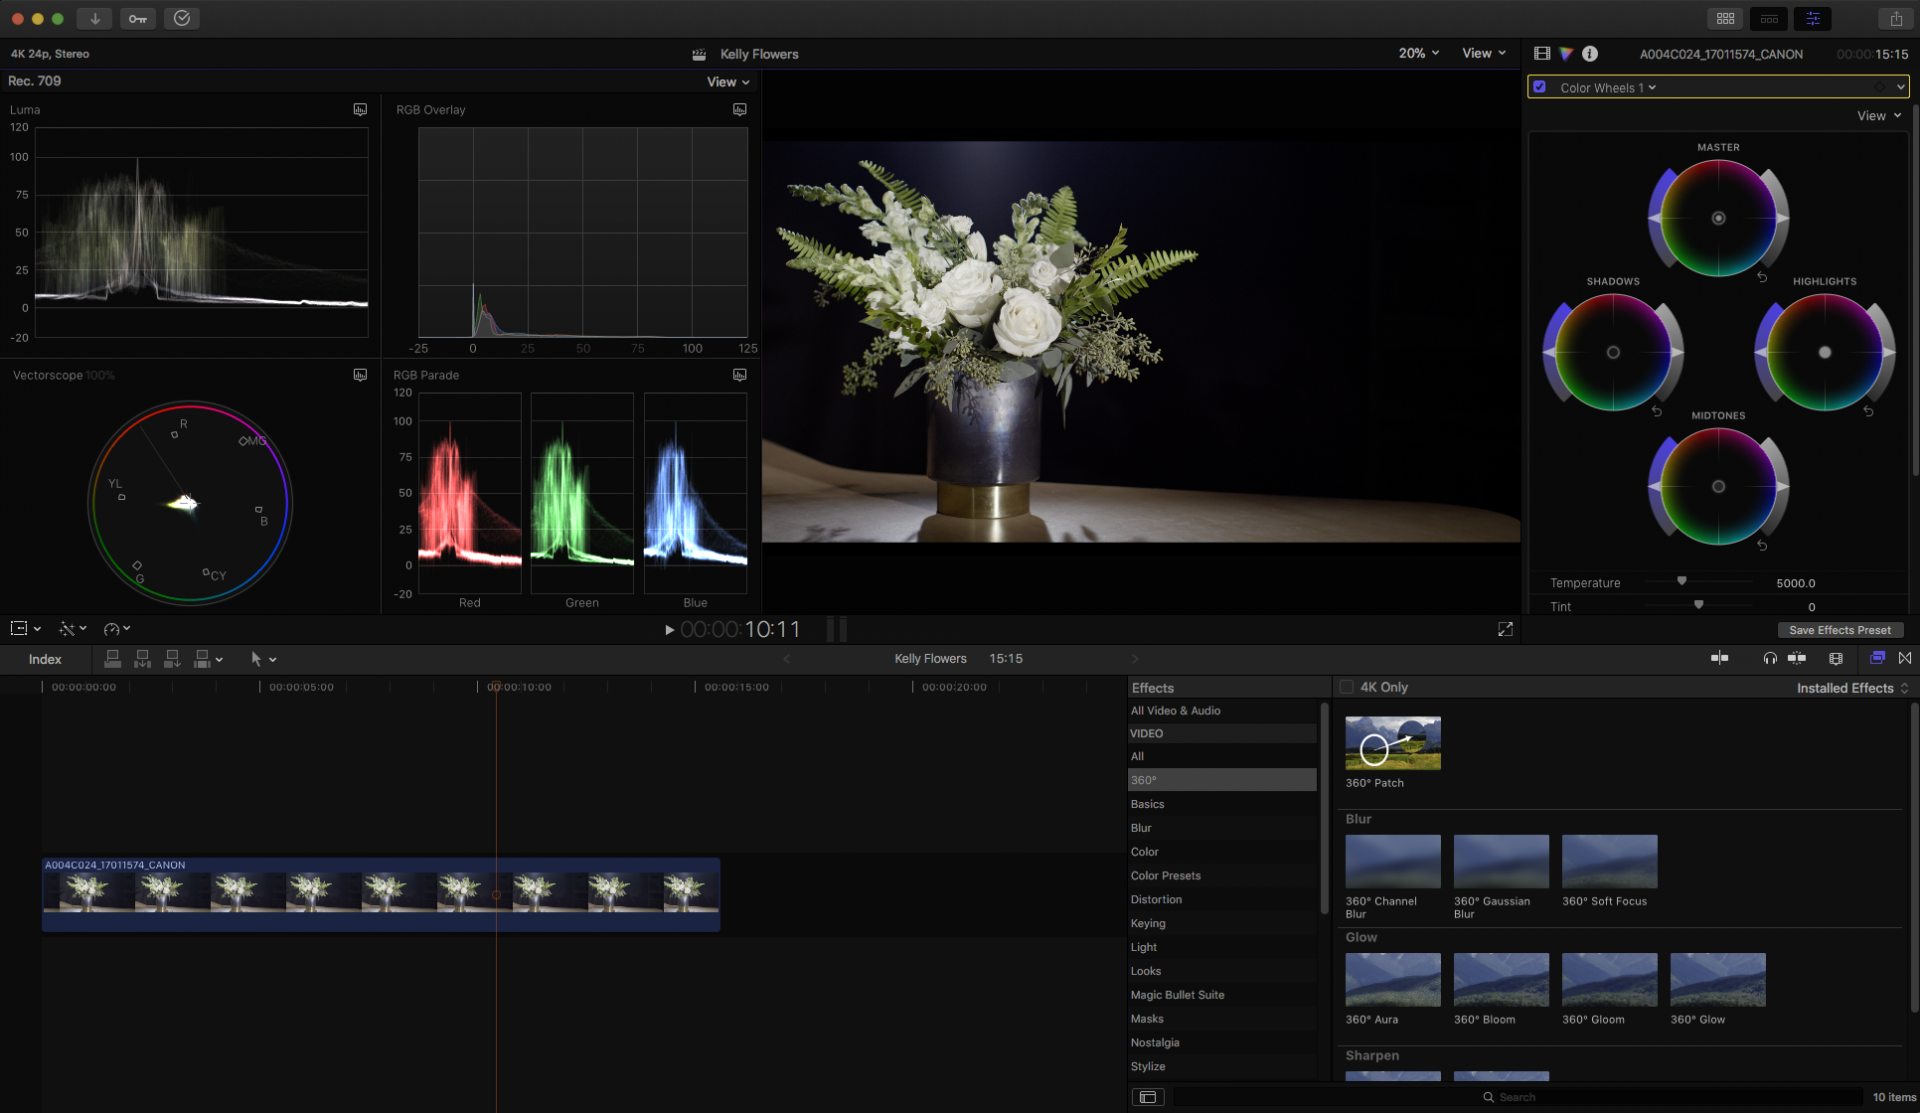 Review: Final Cut Pro X 10 4 Brings 360 Support, Better